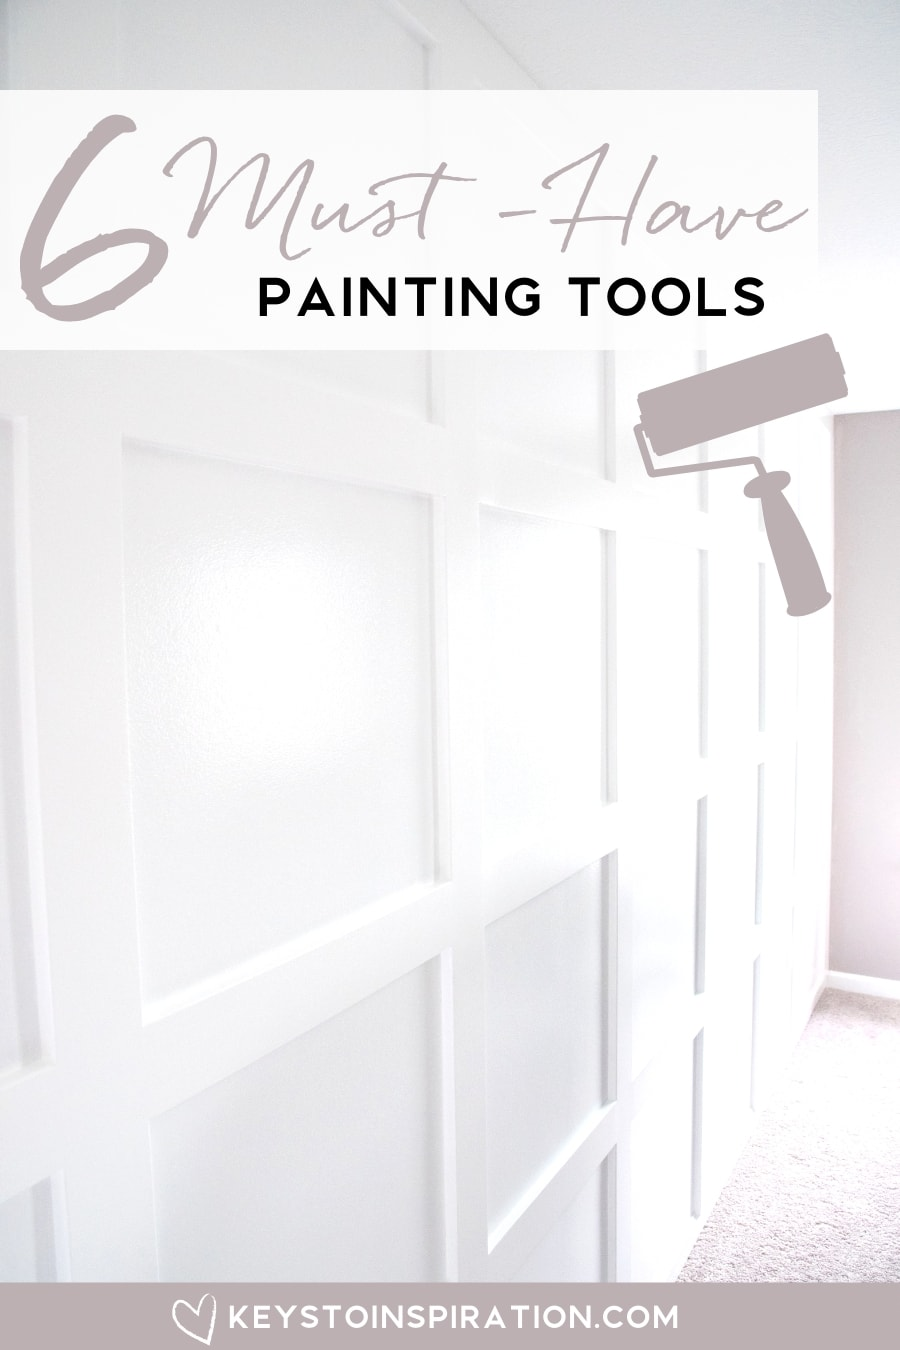 6 Must-Have painting tools white board and batten wall